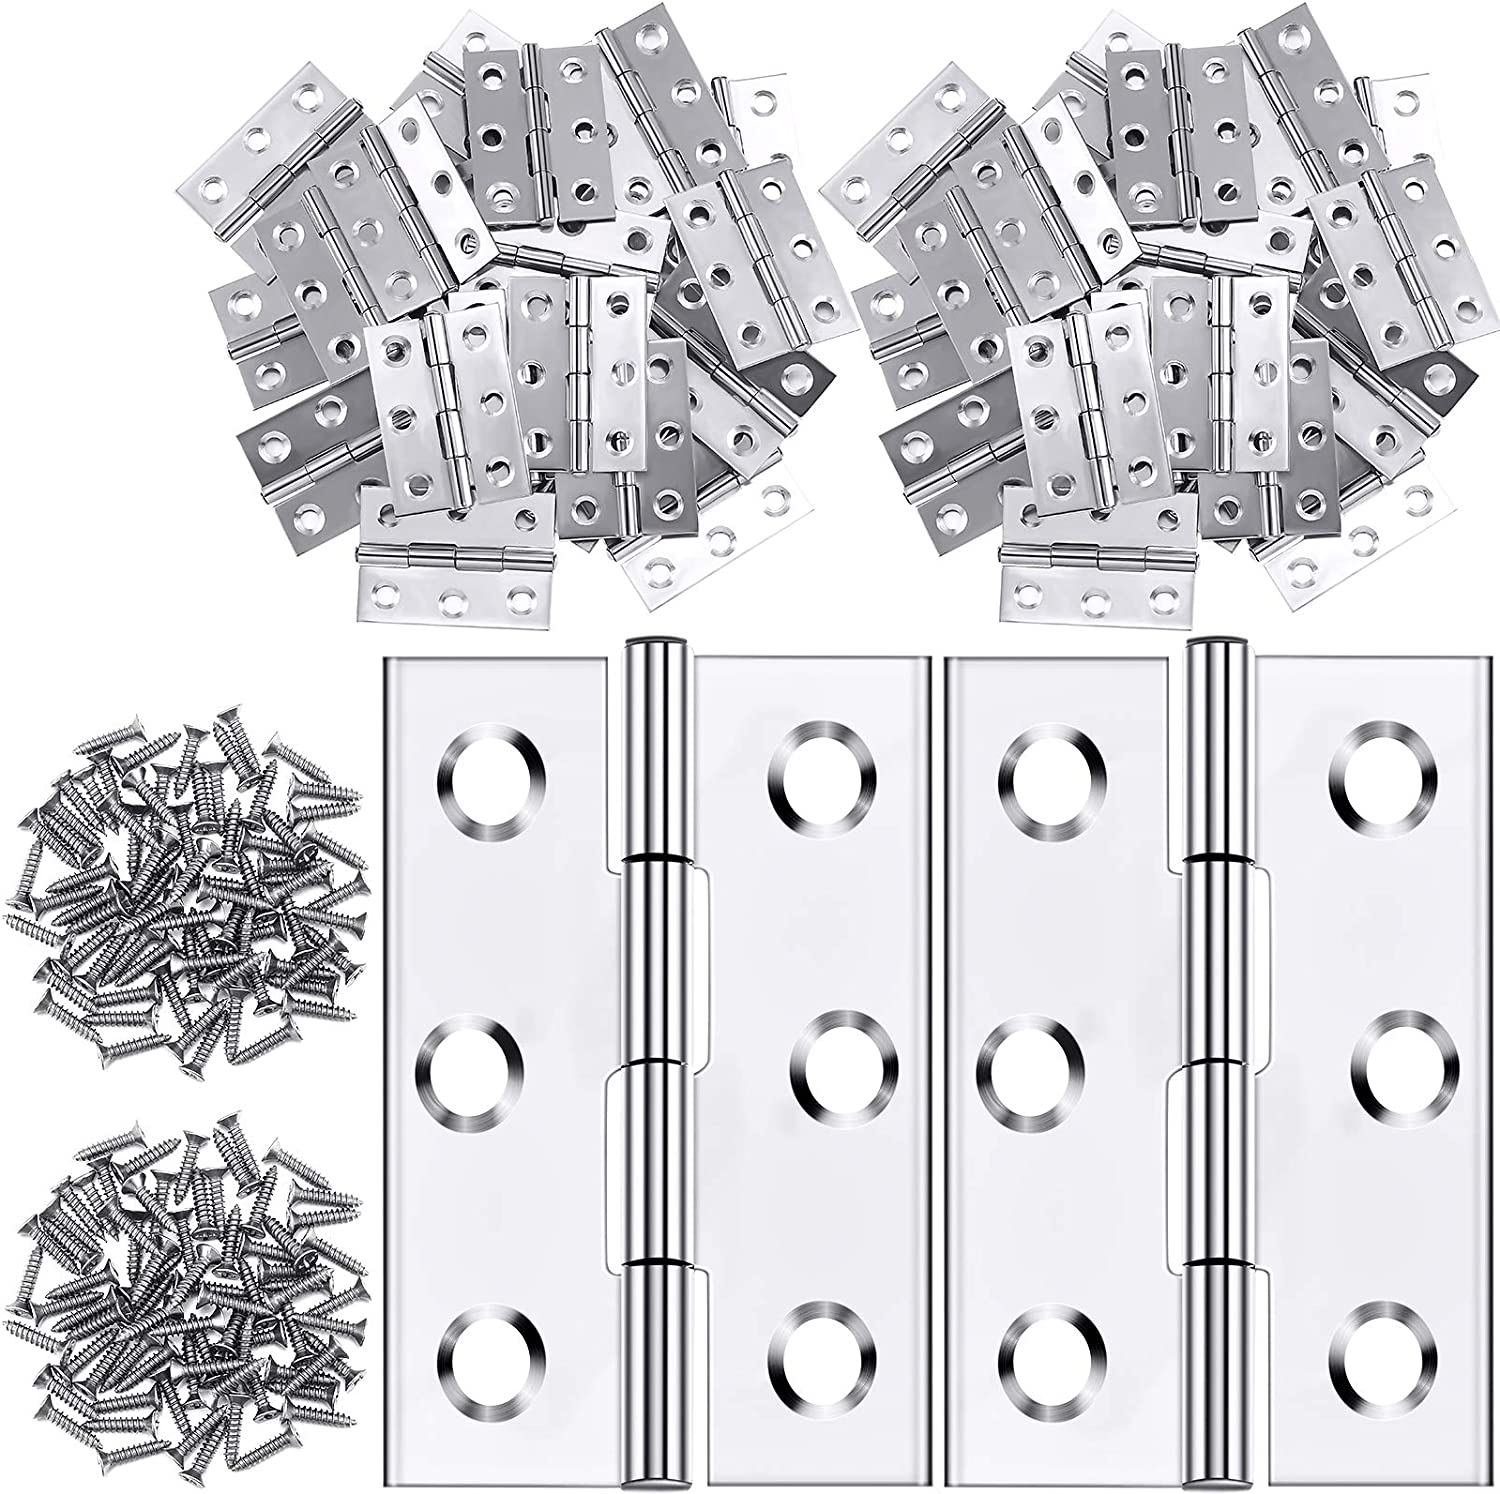 24 Pieces 1.8 Inch Stainless Steel Folding Butt Hinges Furniture Hardware Door Hinge with 144 Pieces Stainless Steel Screws for Cabinet Gate Closet Door (Silver)